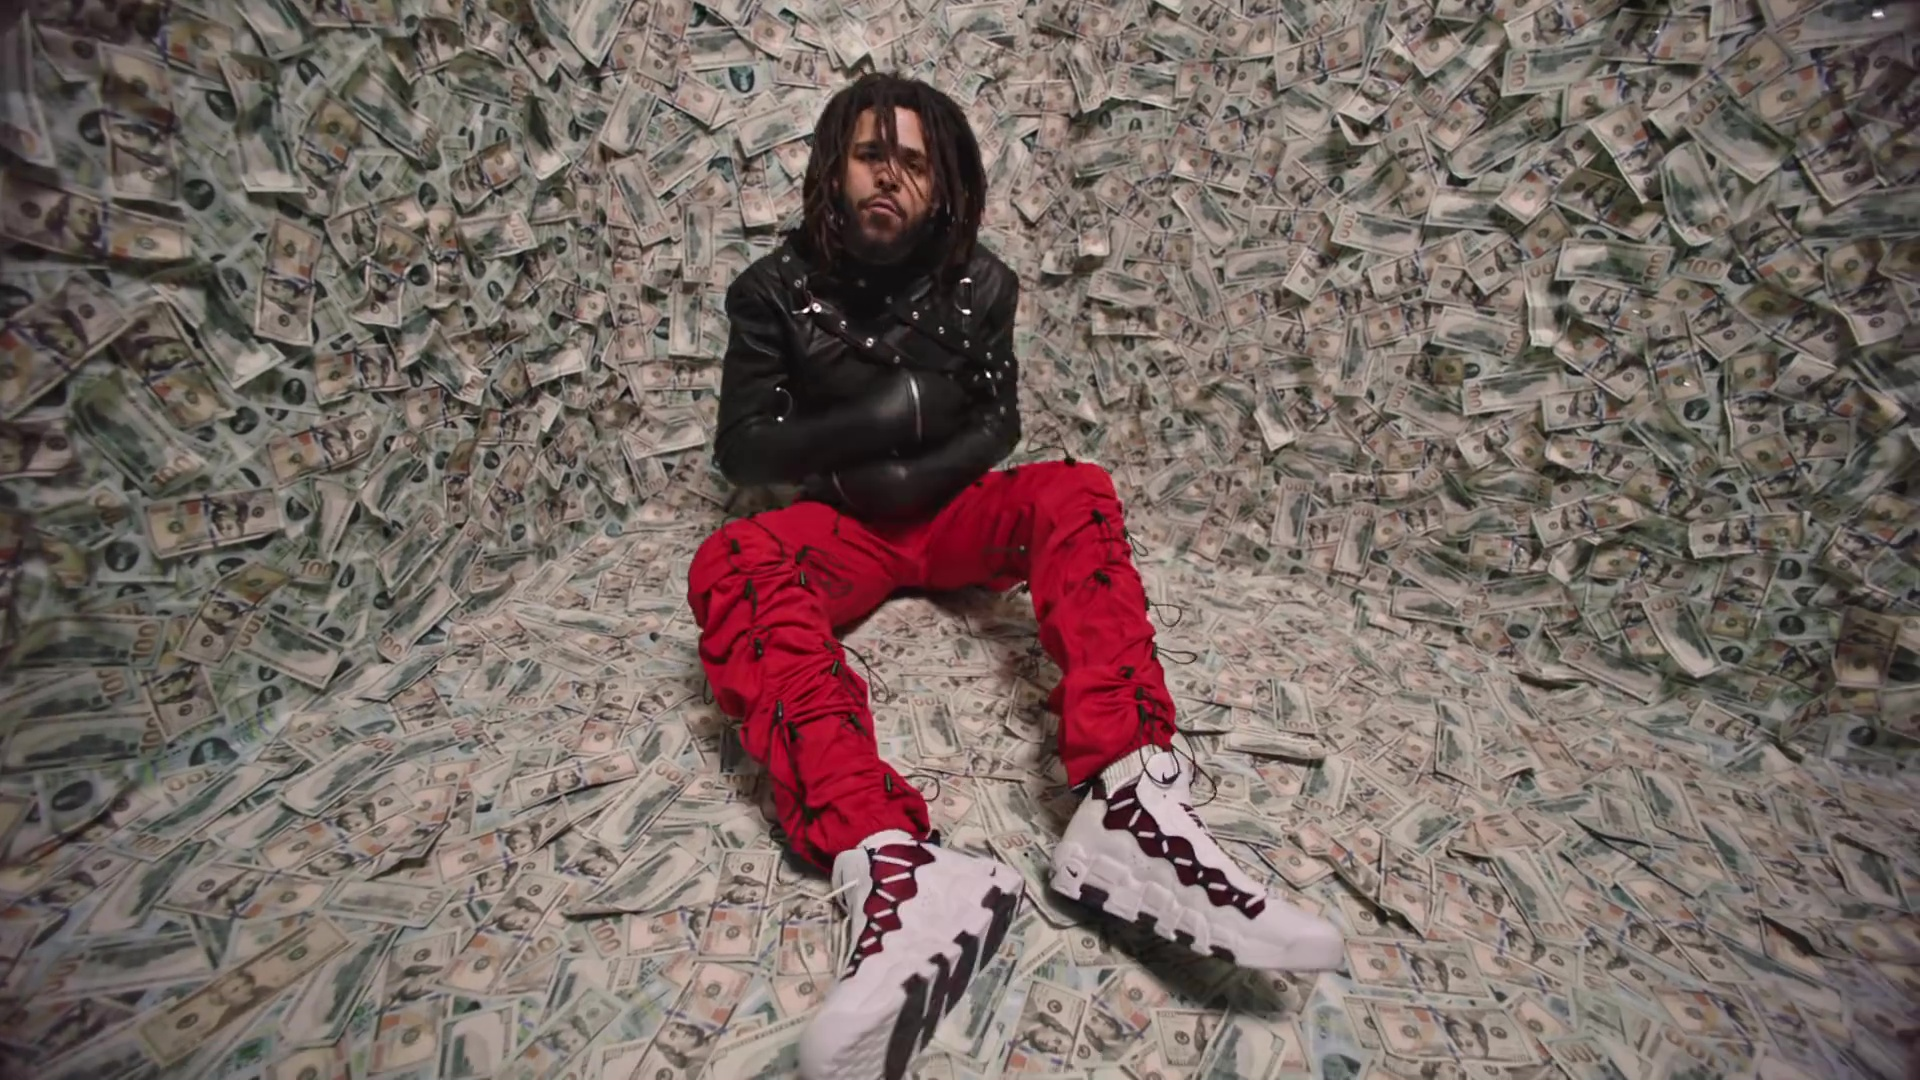 Nike Air More Money Sneakers Worn by J. Cole in ATM (2018 ...